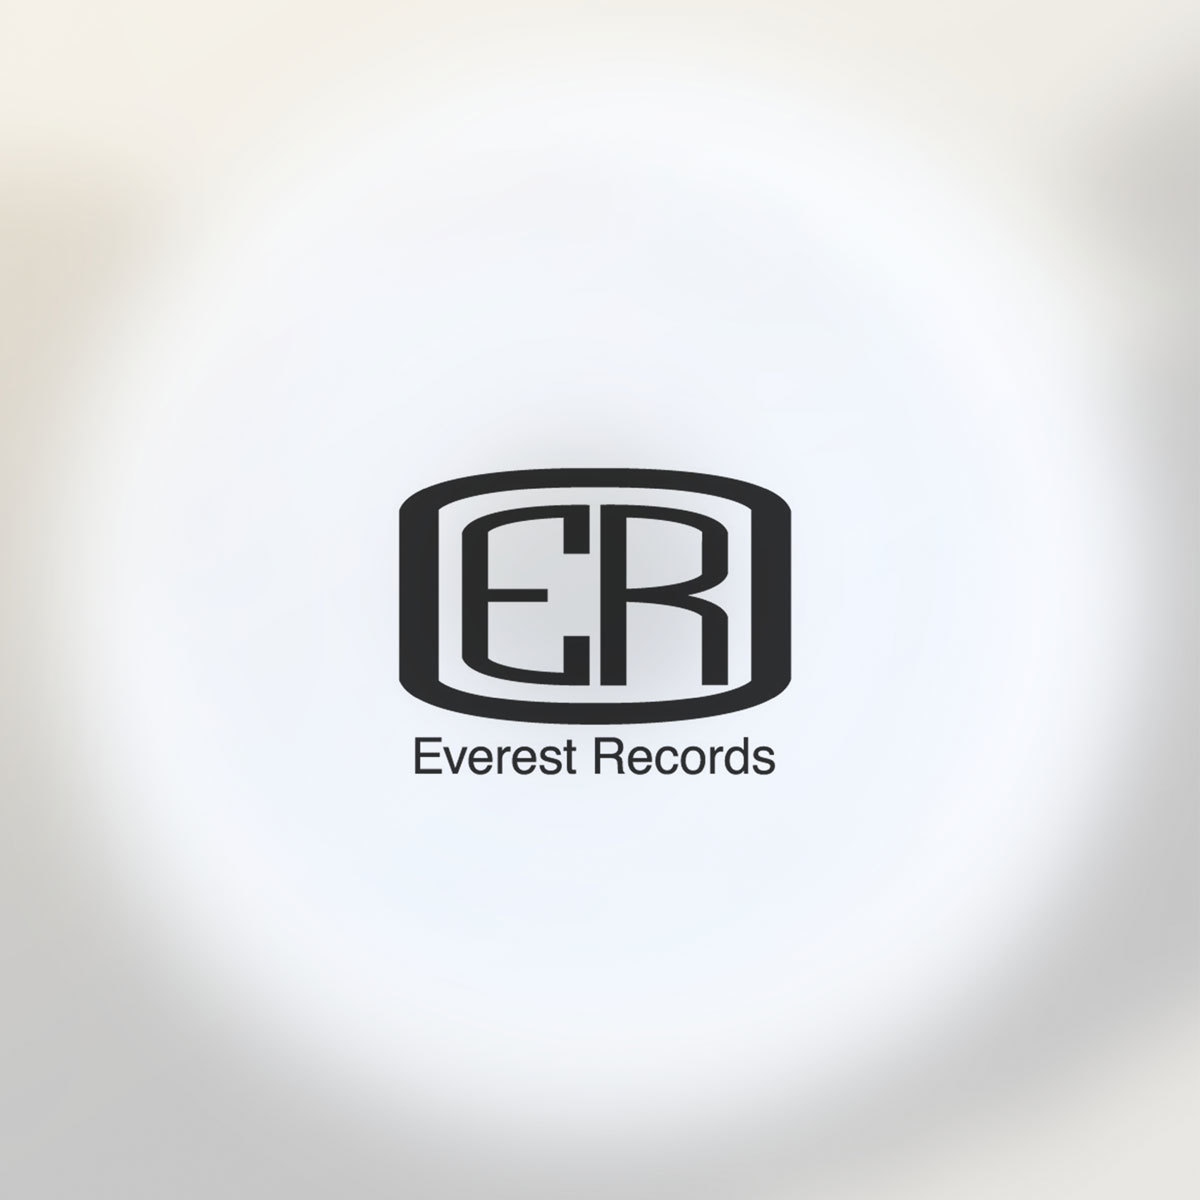 Everest Records 00 MHG Bern